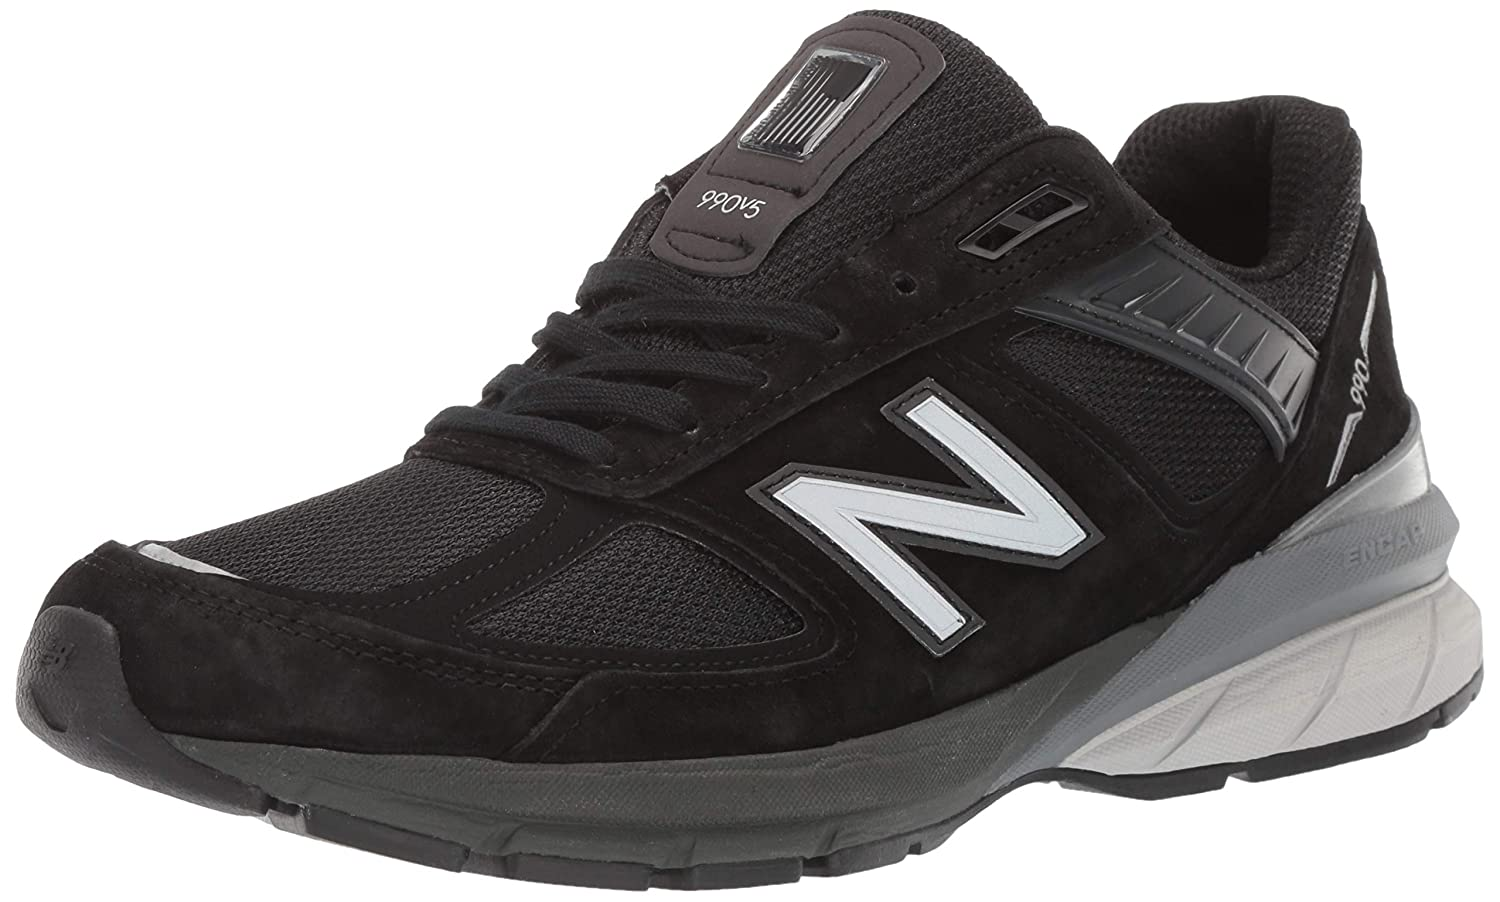 watch 7d857 c9d94 New Balance Men's 990v5 Sneaker